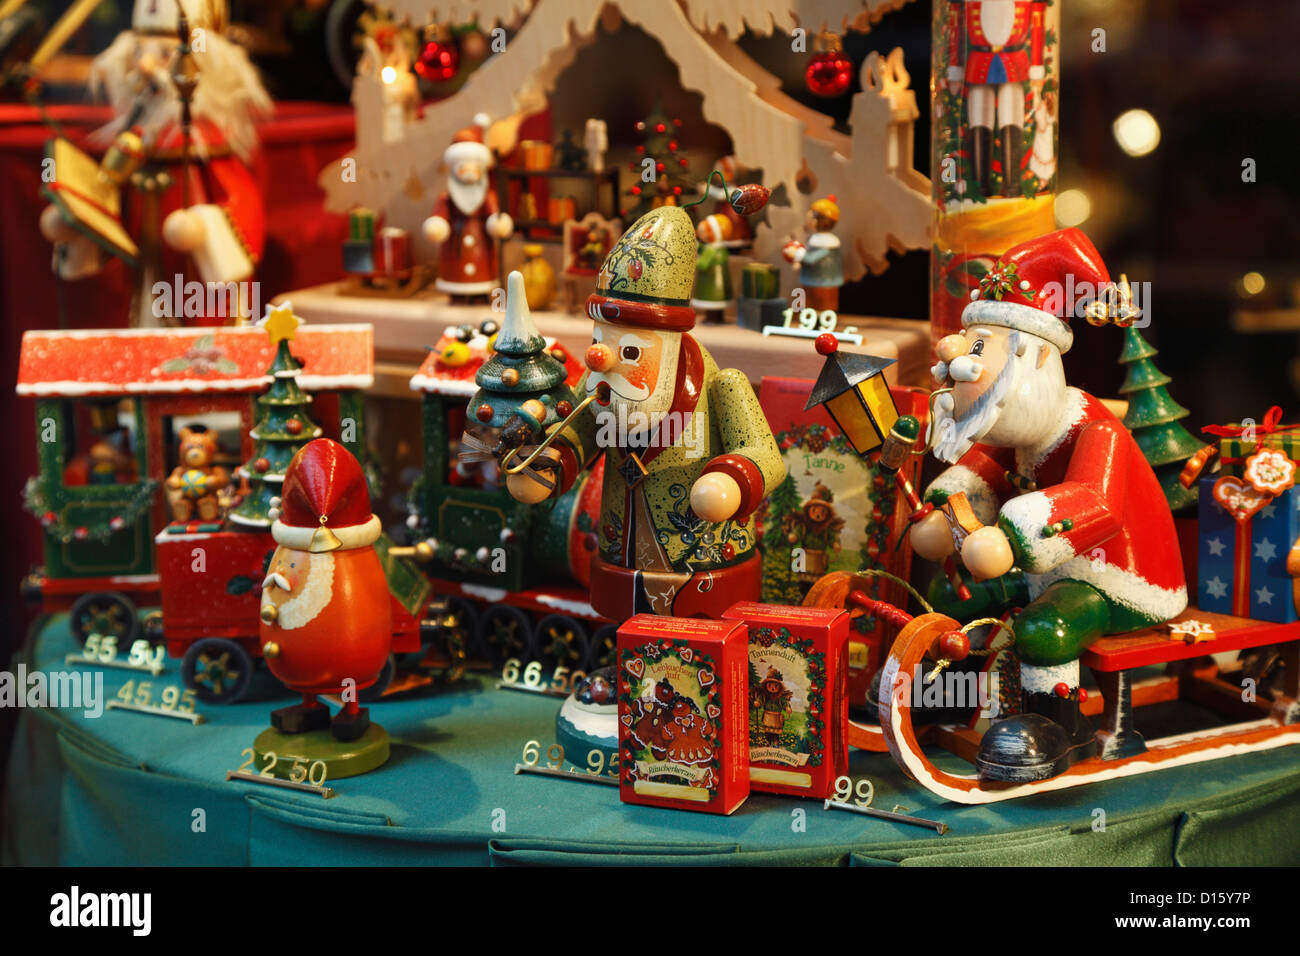 Christmas Toys For Christmas : Vintage look christmas toys and decorations in a store